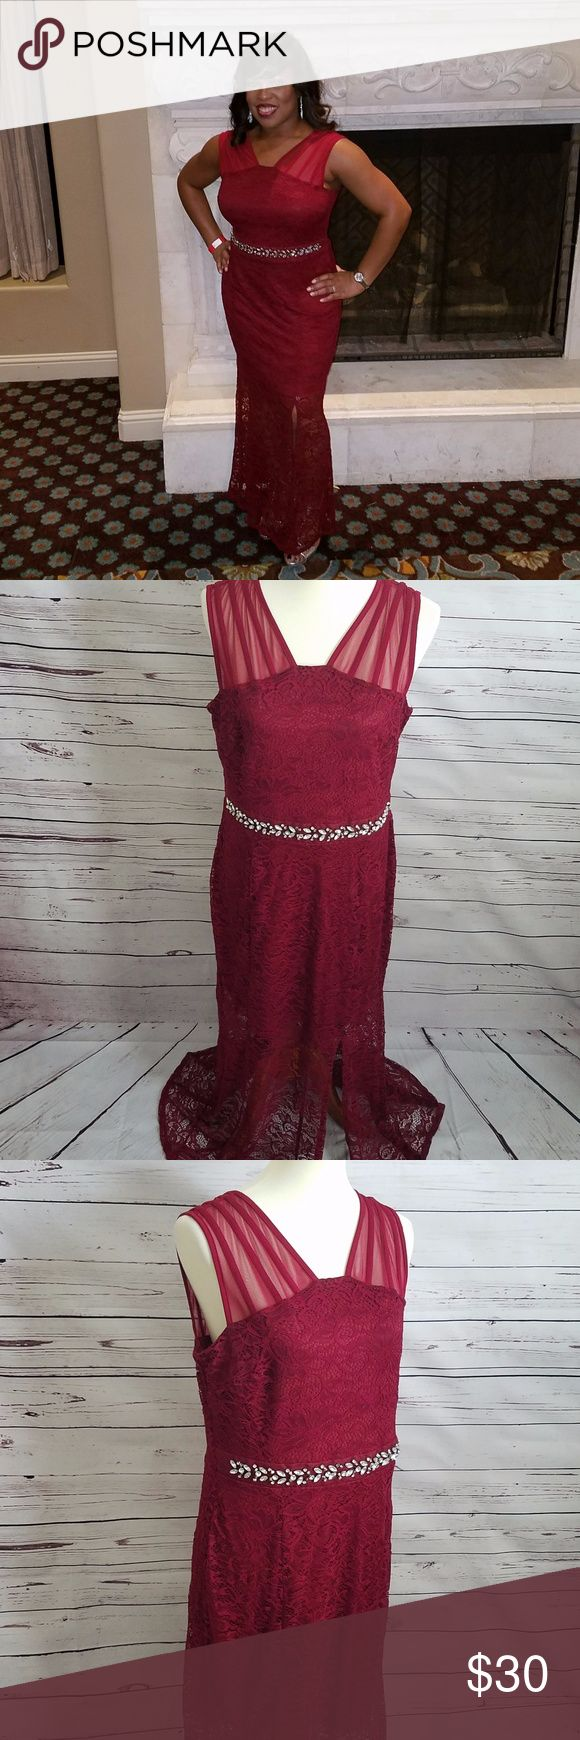 Enfocus Studio Lace Cocktail Gown Embellished Belt Enfocus Studio Red Formal Lace Gown with Embellished Belt.  Sleeveless and Front Split Size 14. Enfocus Studio Dresses